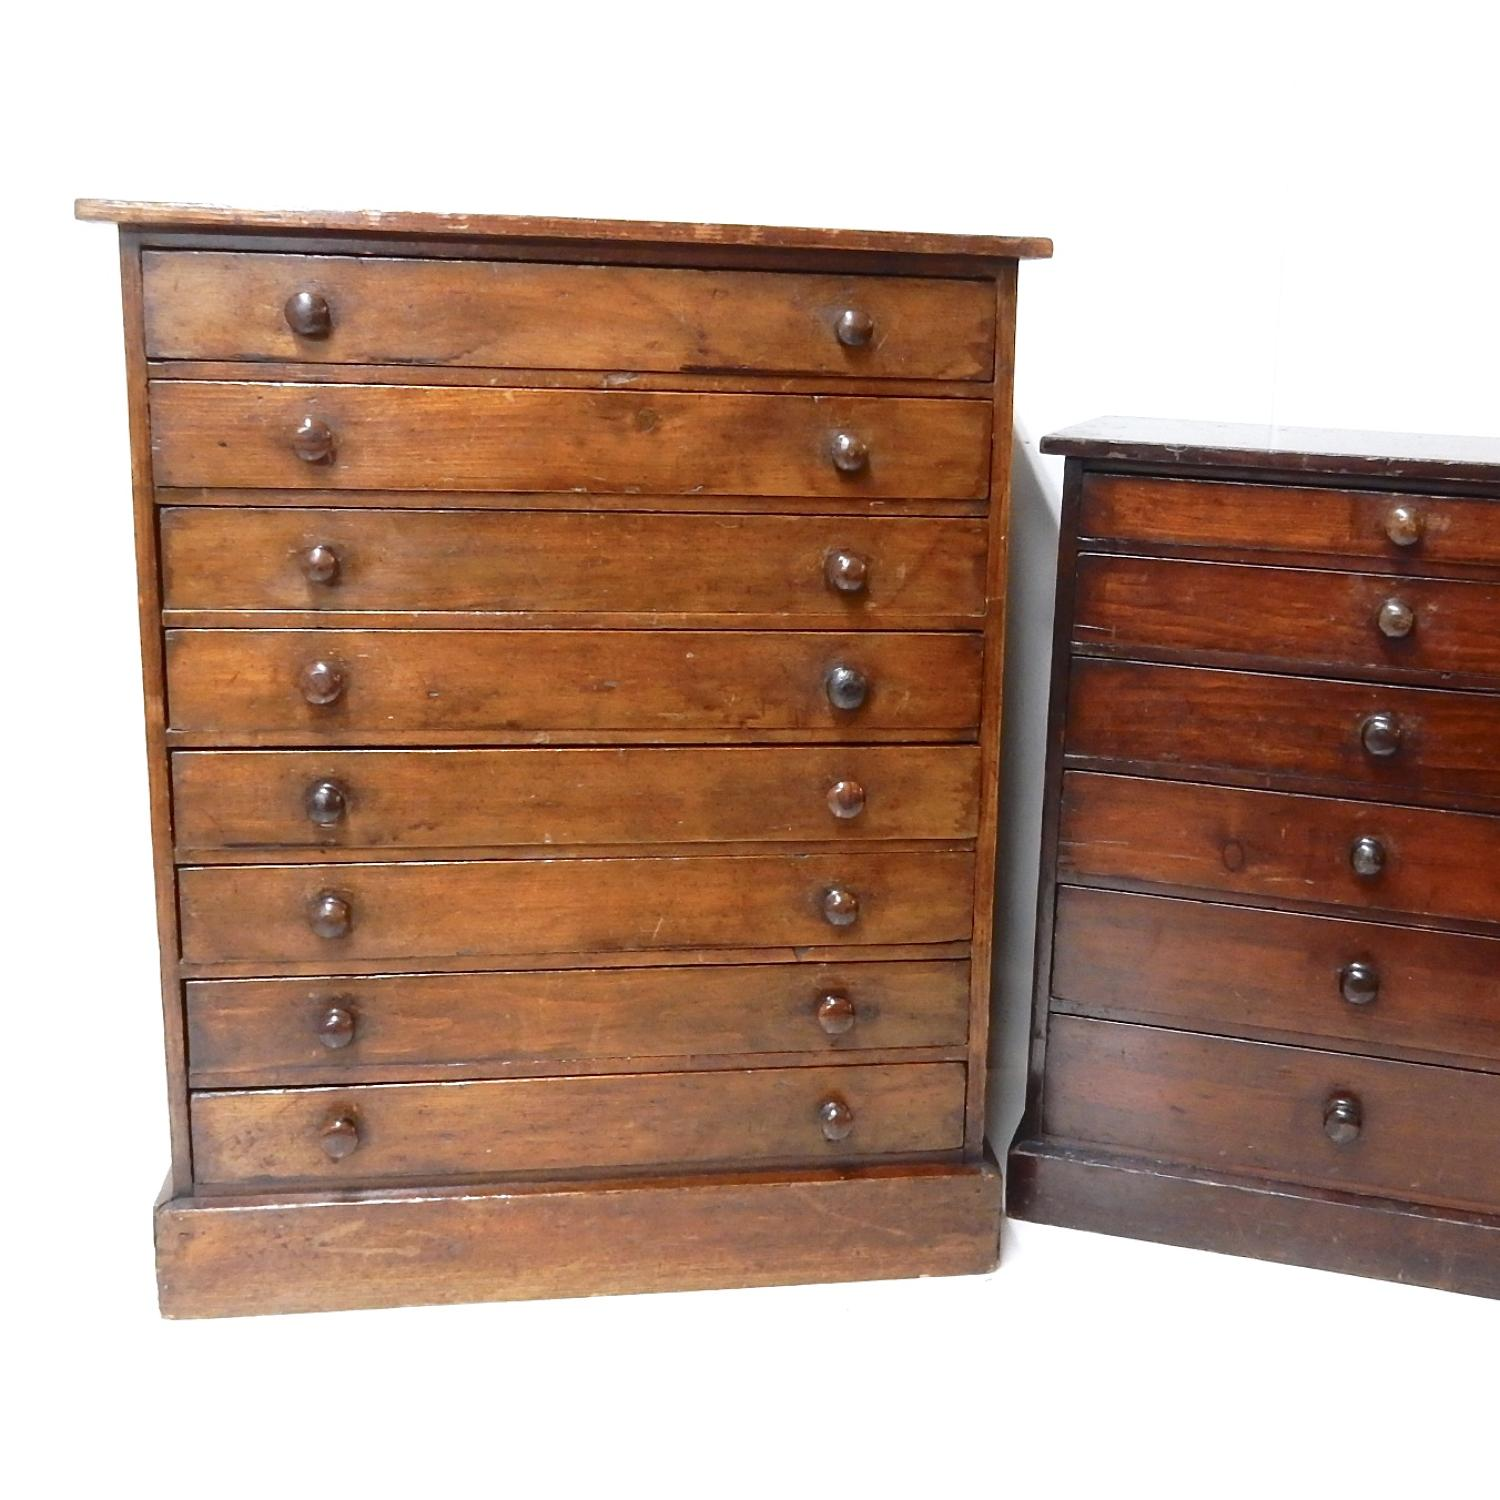 Victorian Collector's Chest